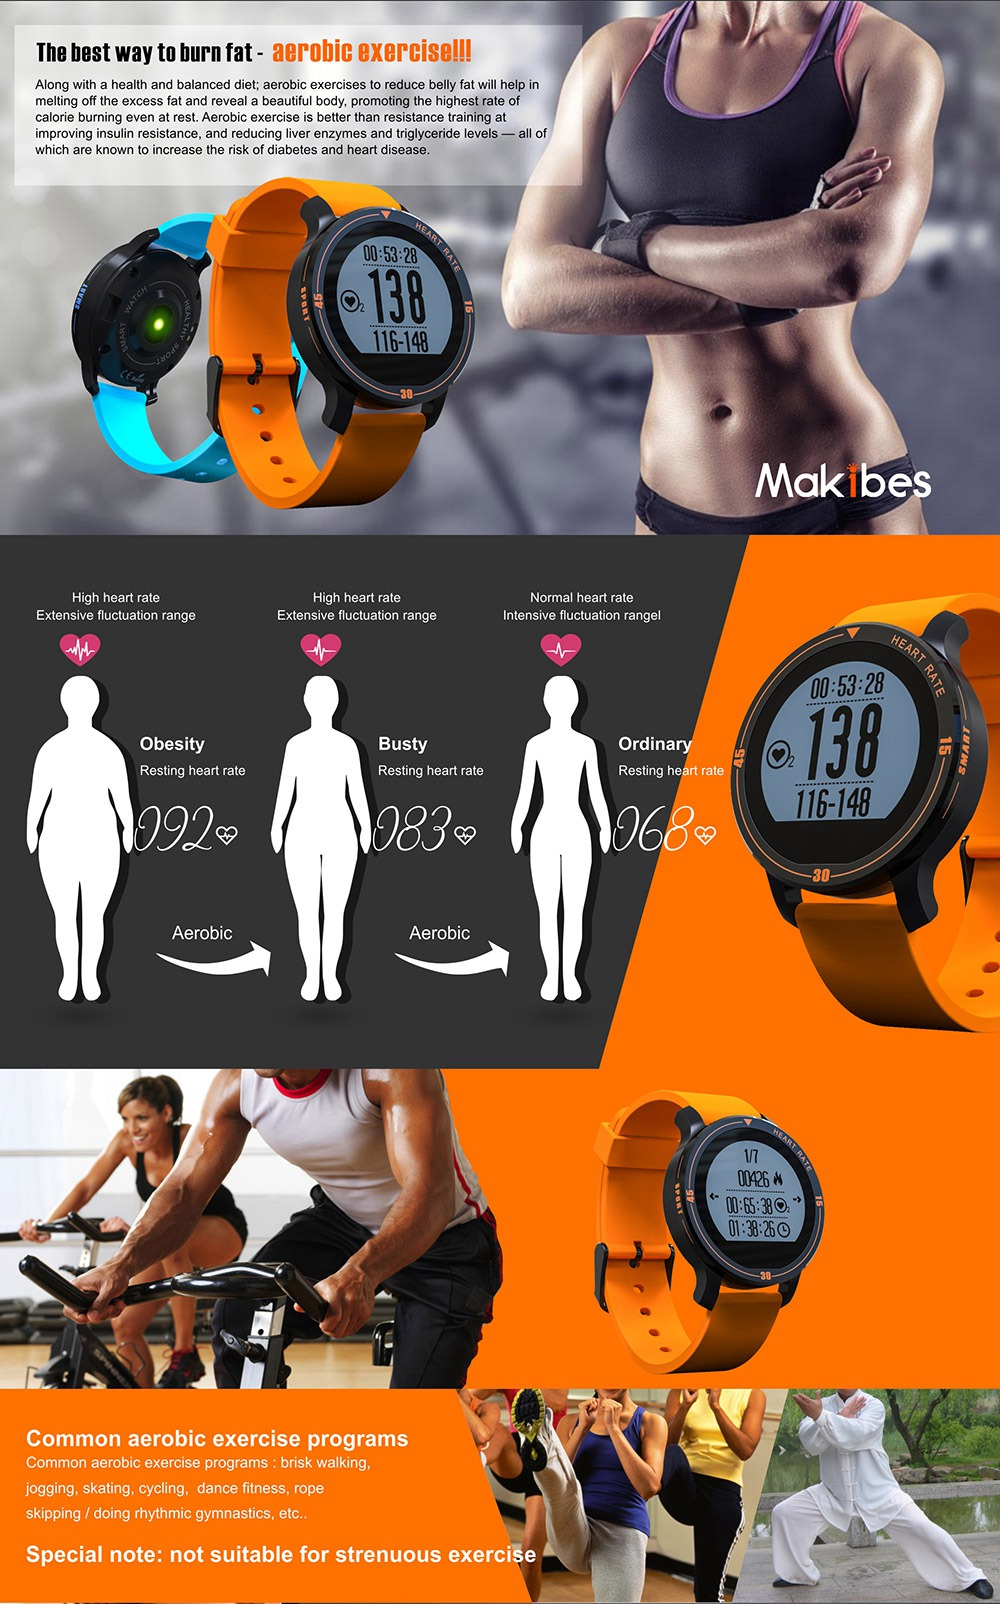 MAKIBES AEROBIC A1 SMART SPORTS WATCH BLUETOOTH DYNAMIC HEART RATE MONITOR SMARTWATCH S200 231407 16